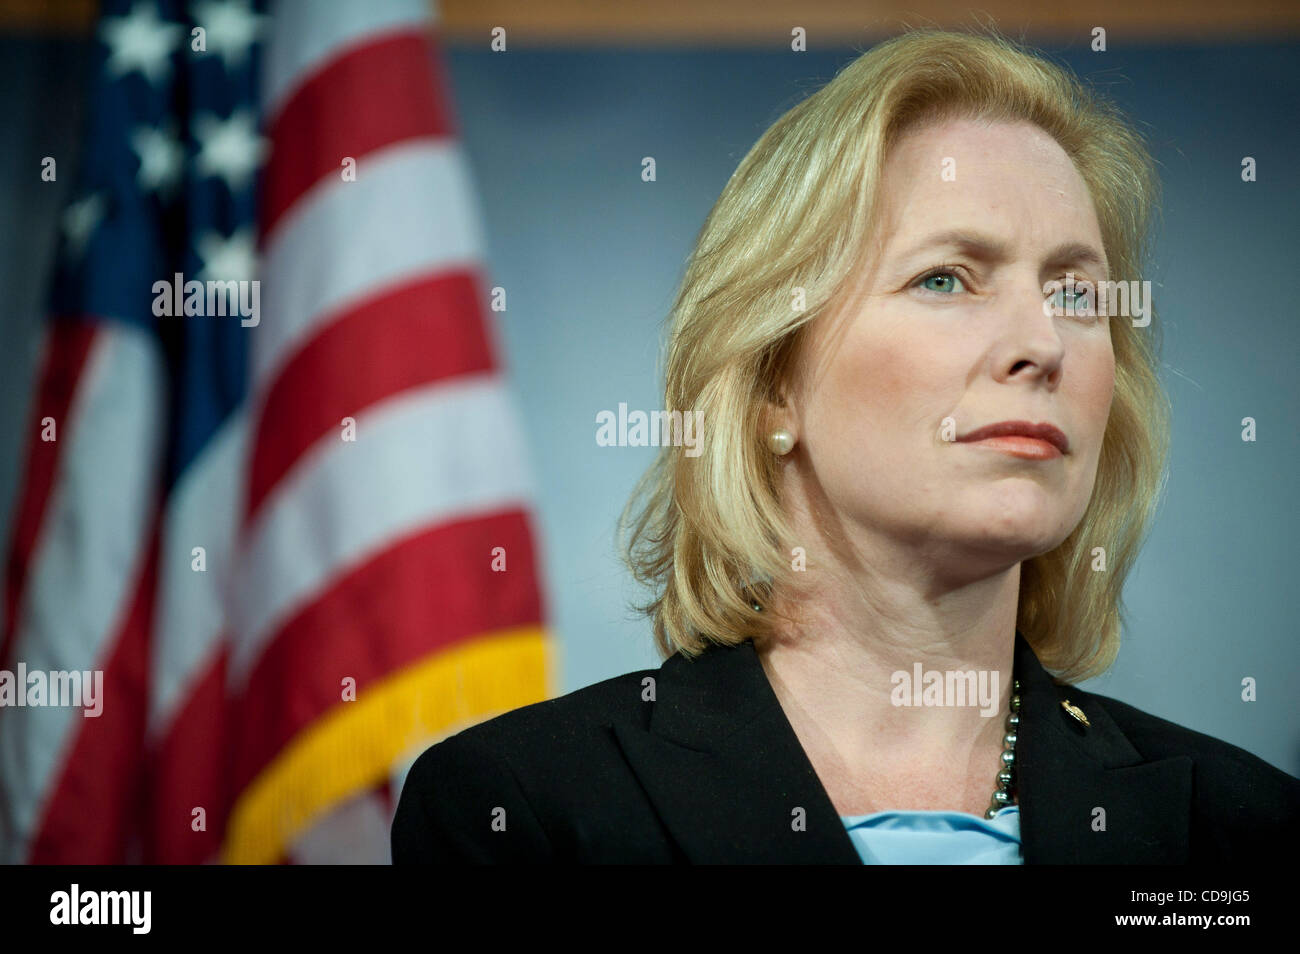 Jul 14, 2010 - Washington, District of Columbia, U.S., -  Senator Kirsten Gillibrand joined Senators Schumer, Menendez - Stock Image